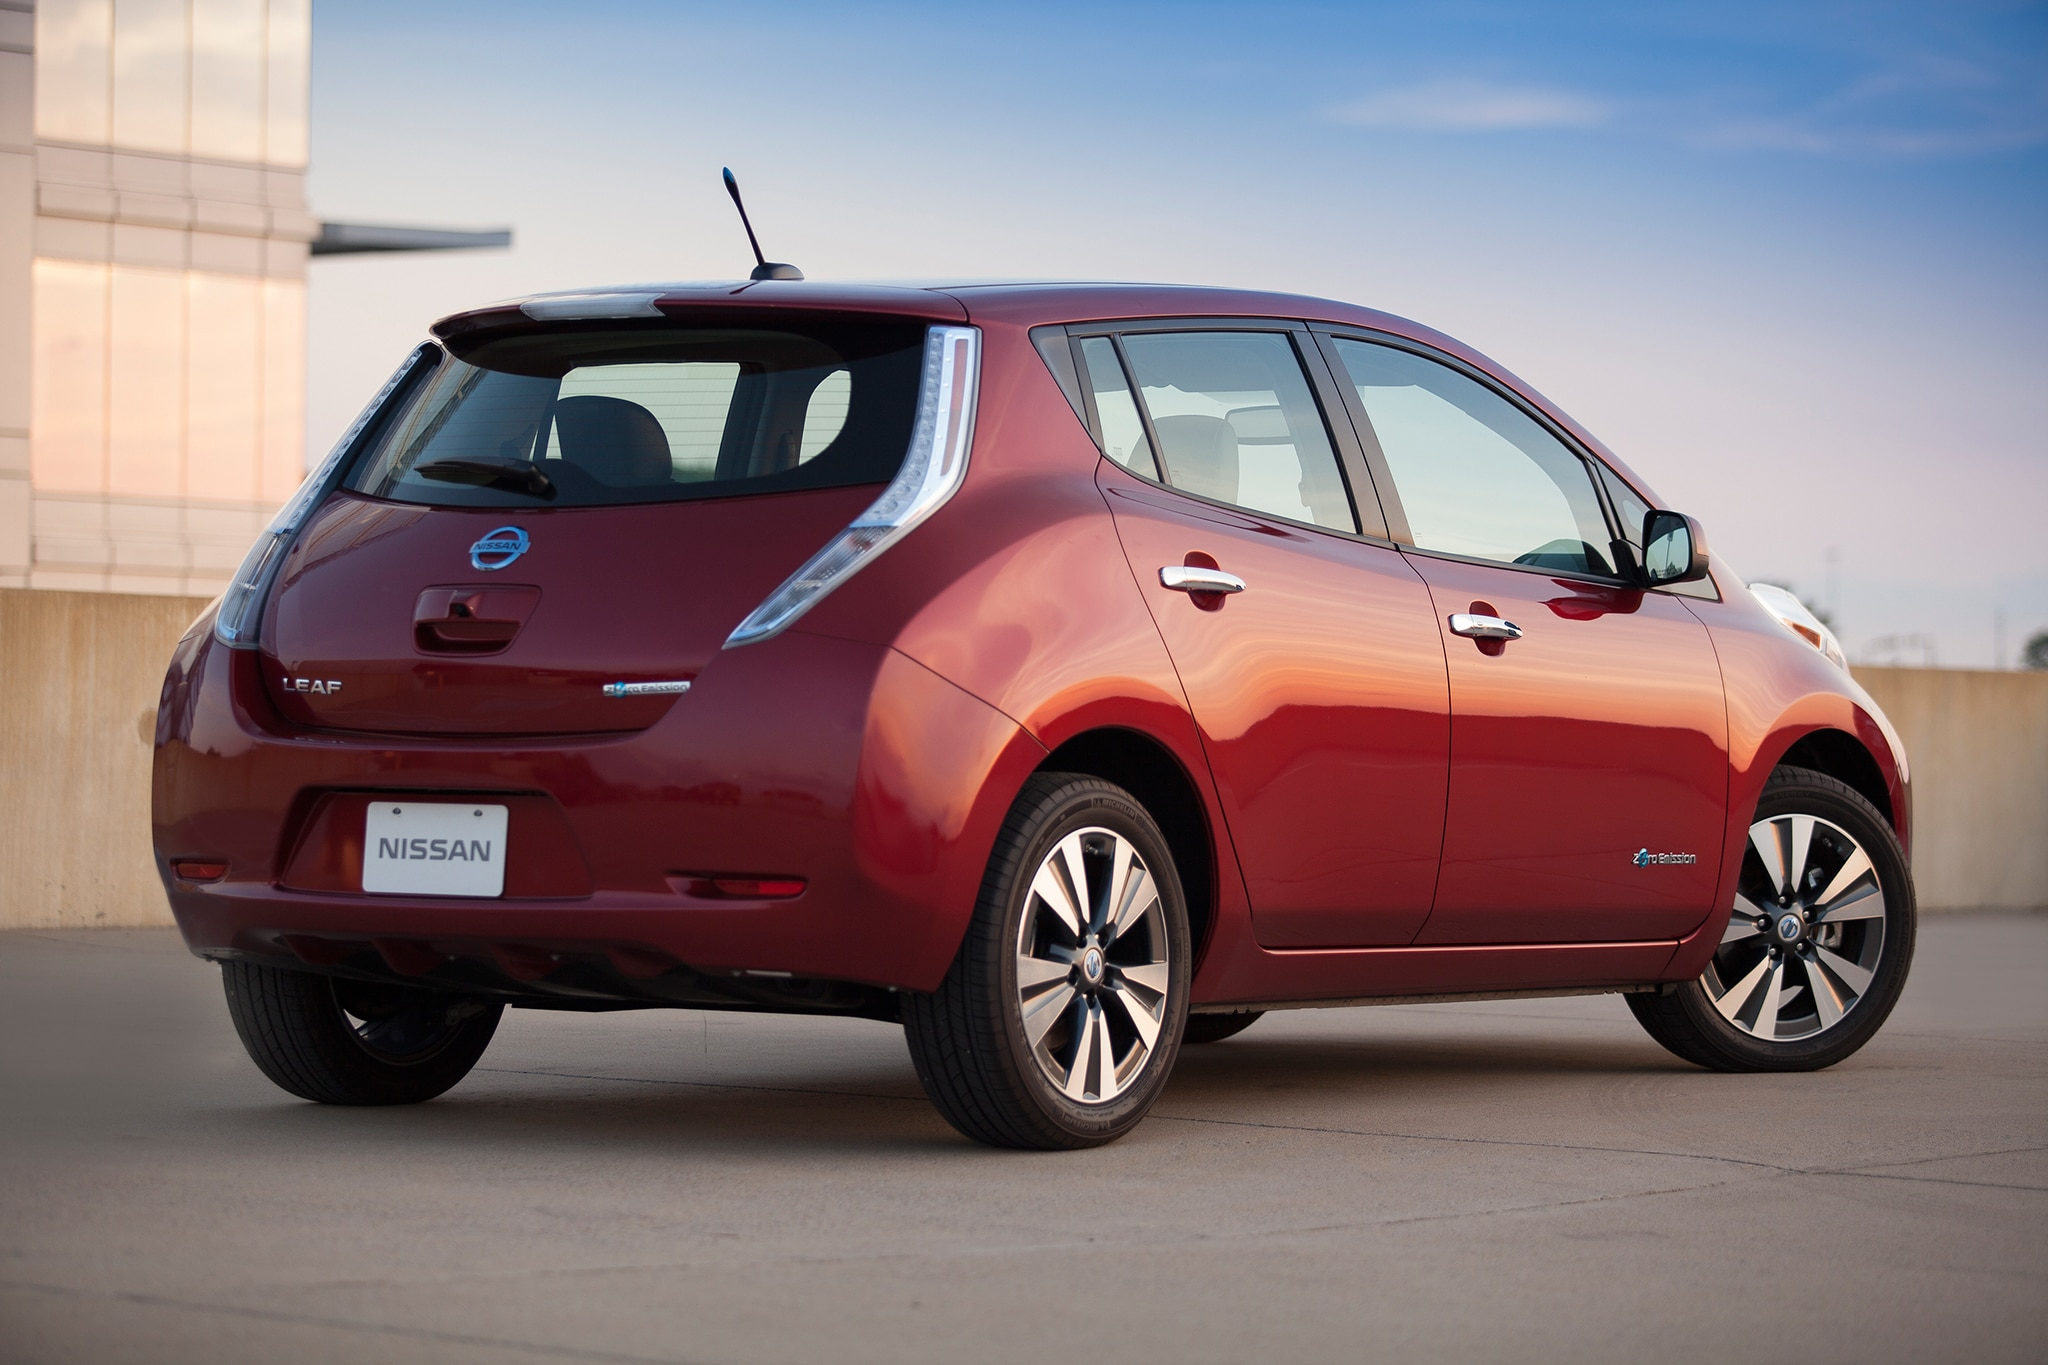 2015 Nissan Leaf Rear Three Quarters View